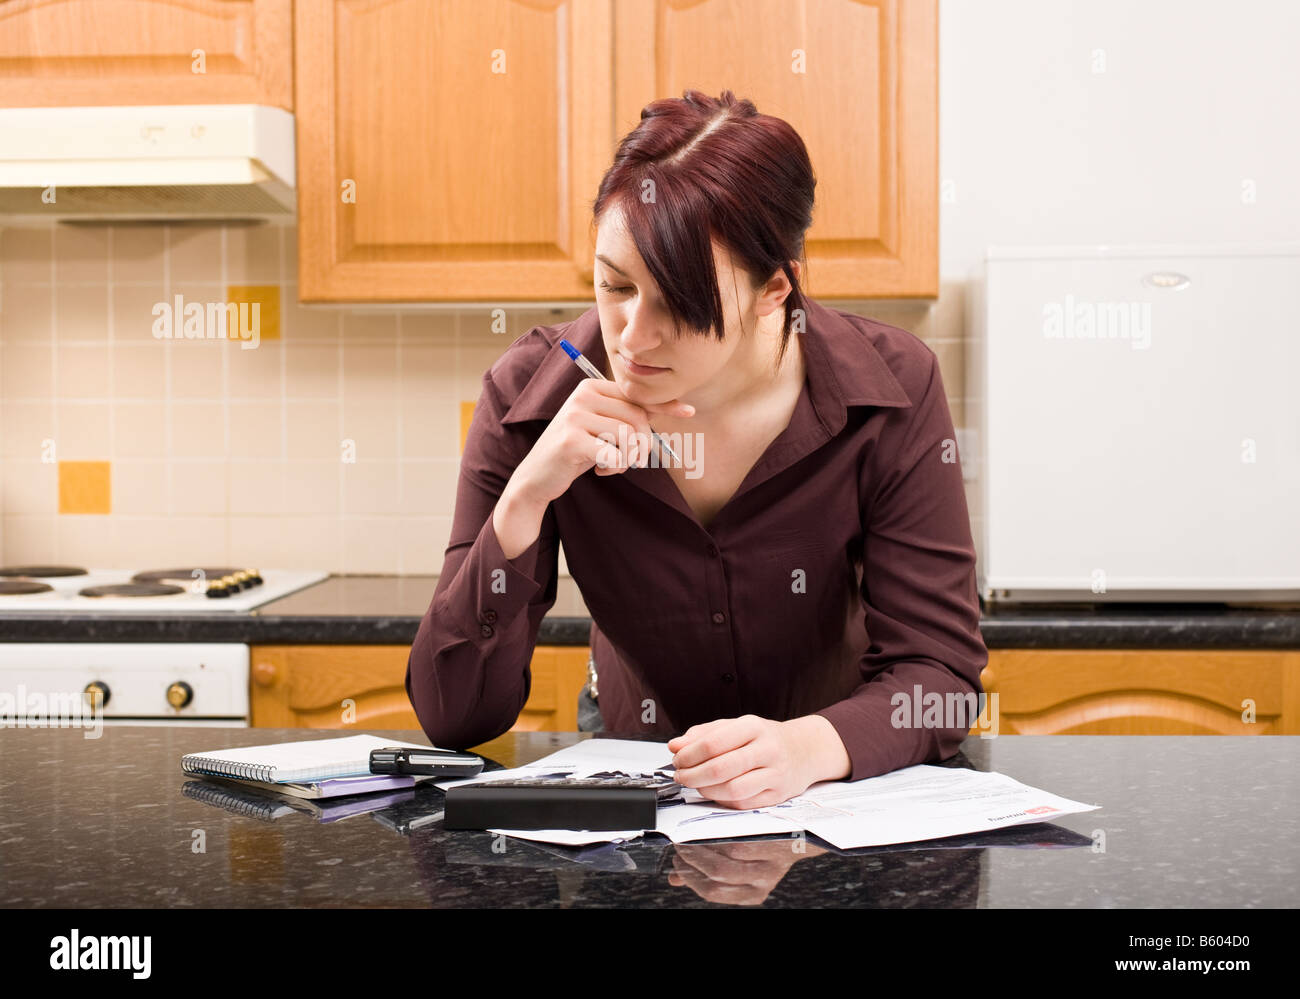 Young woman concentrating on household finances and budget with bills and calculator - Stock Image